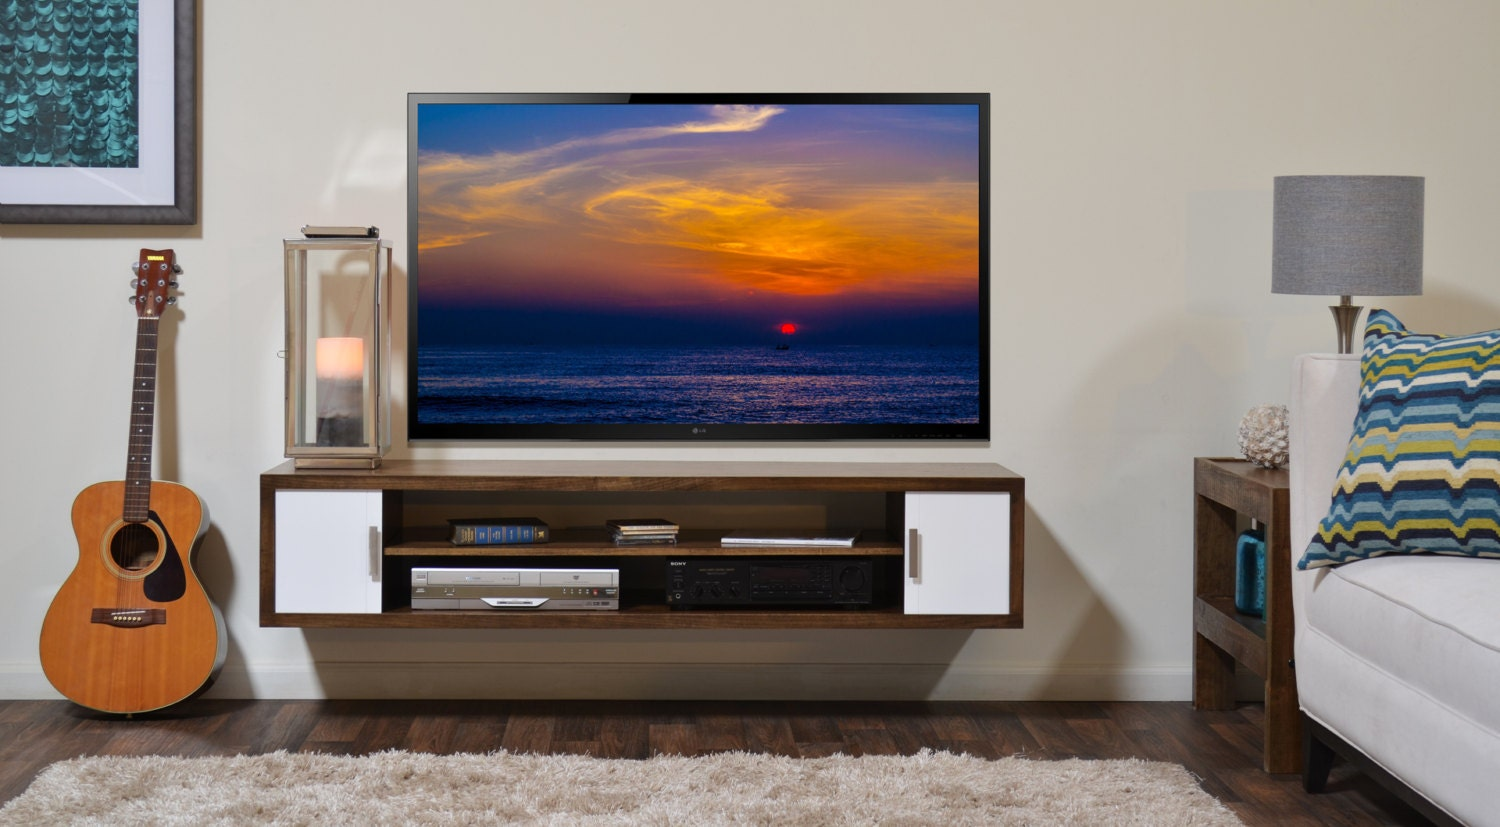 Image Result For Swivel Wall Mount Tv Stand With Shelf